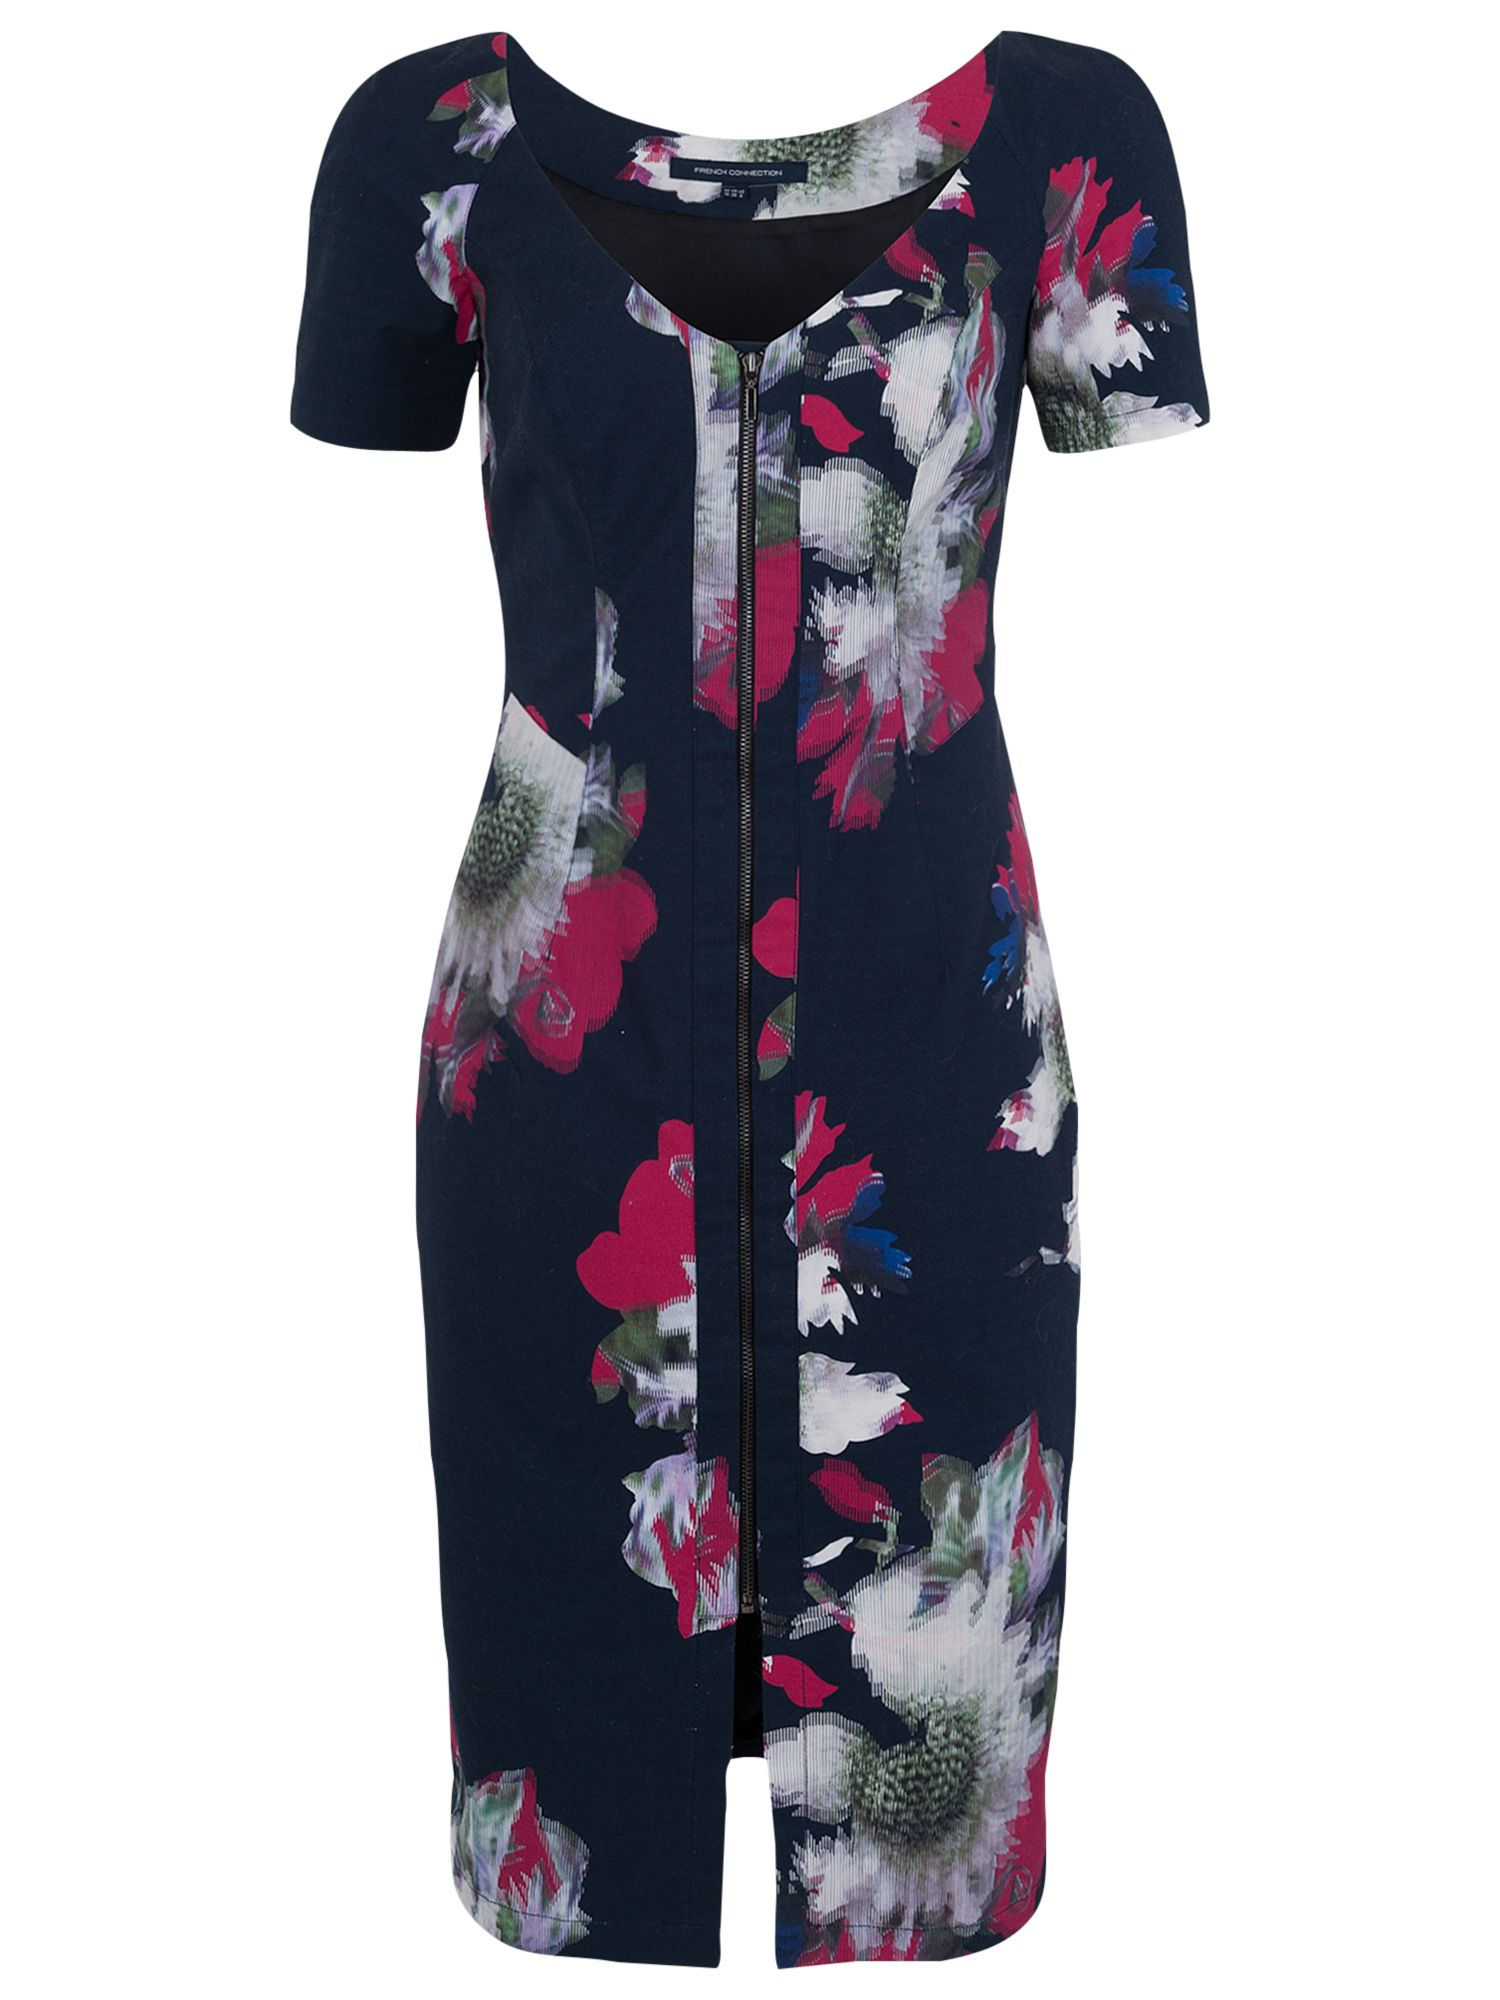 french connection wilderness bloom v-neck dress utility blue, french, connection, wilderness, bloom, v-neck, dress, utility, blue, french connection, 6|8, clearance, womenswear offers, womens dresses offers, women, inactive womenswear, new reductions, womens dresses, special offers, 1667151